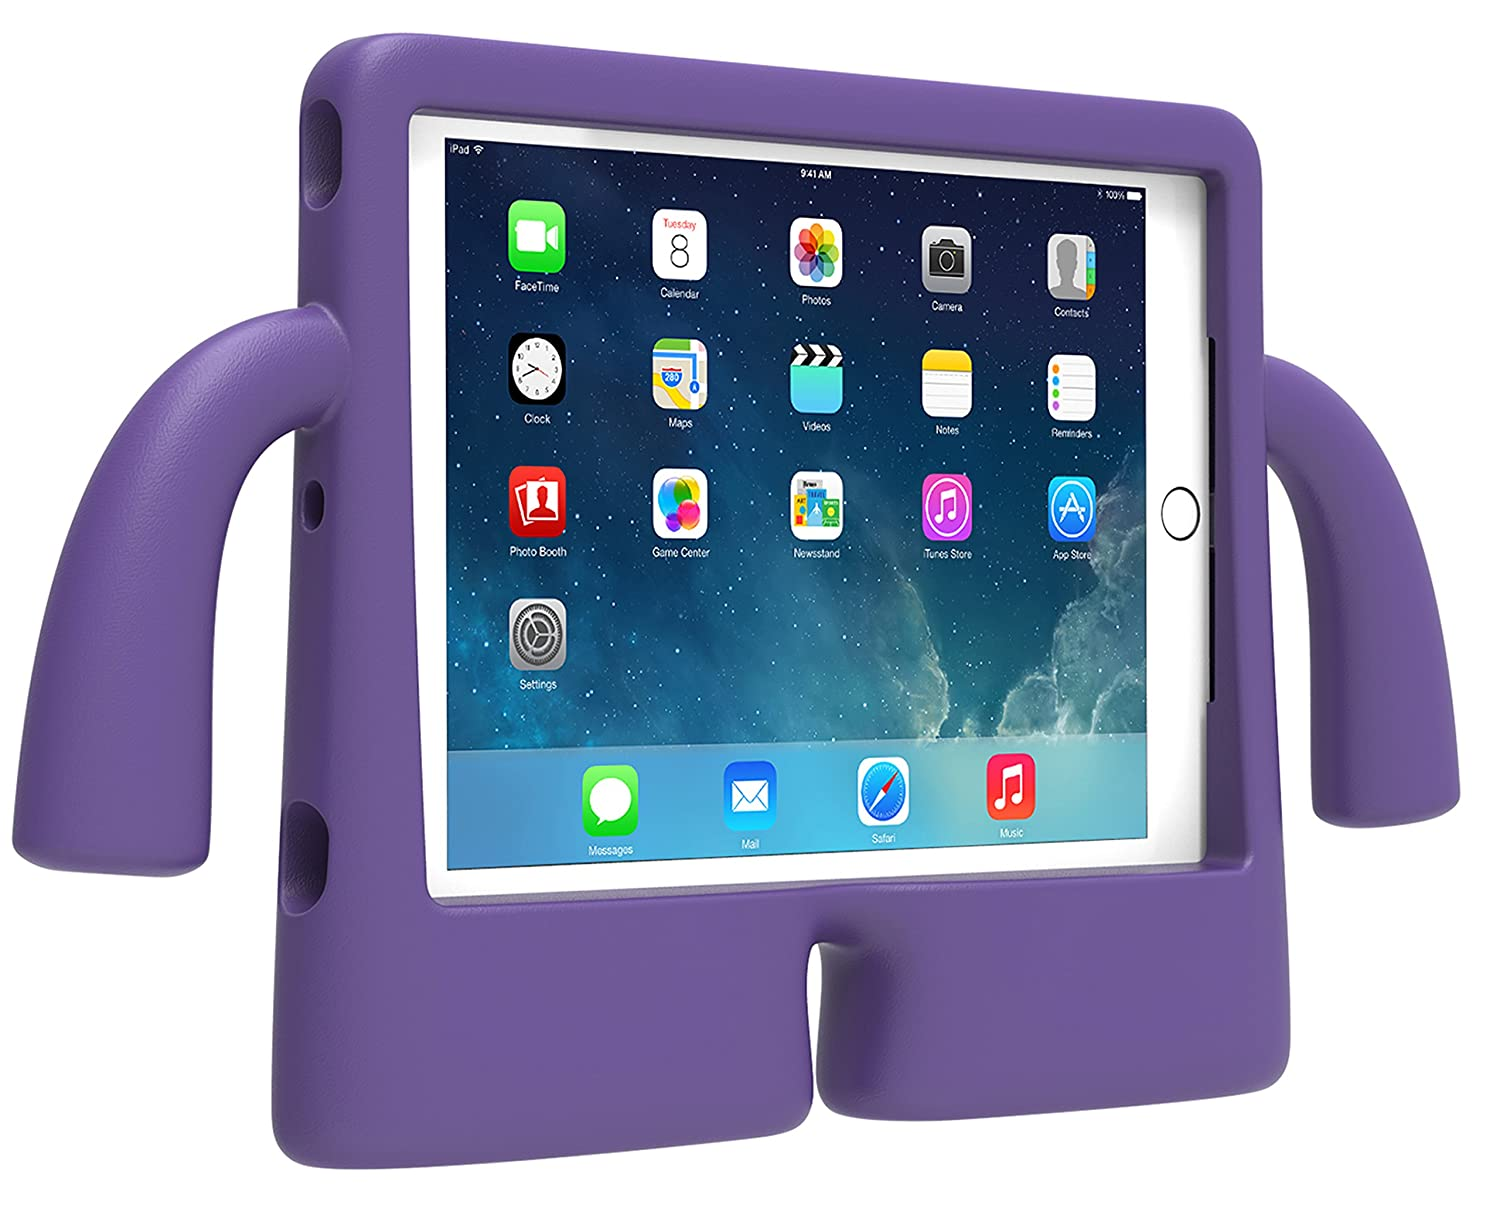 wholesale dealer a6a73 58546 Speck iGuy Kids Protective Rubberised Case Cover for iPad Air 2 - Purple  Grape